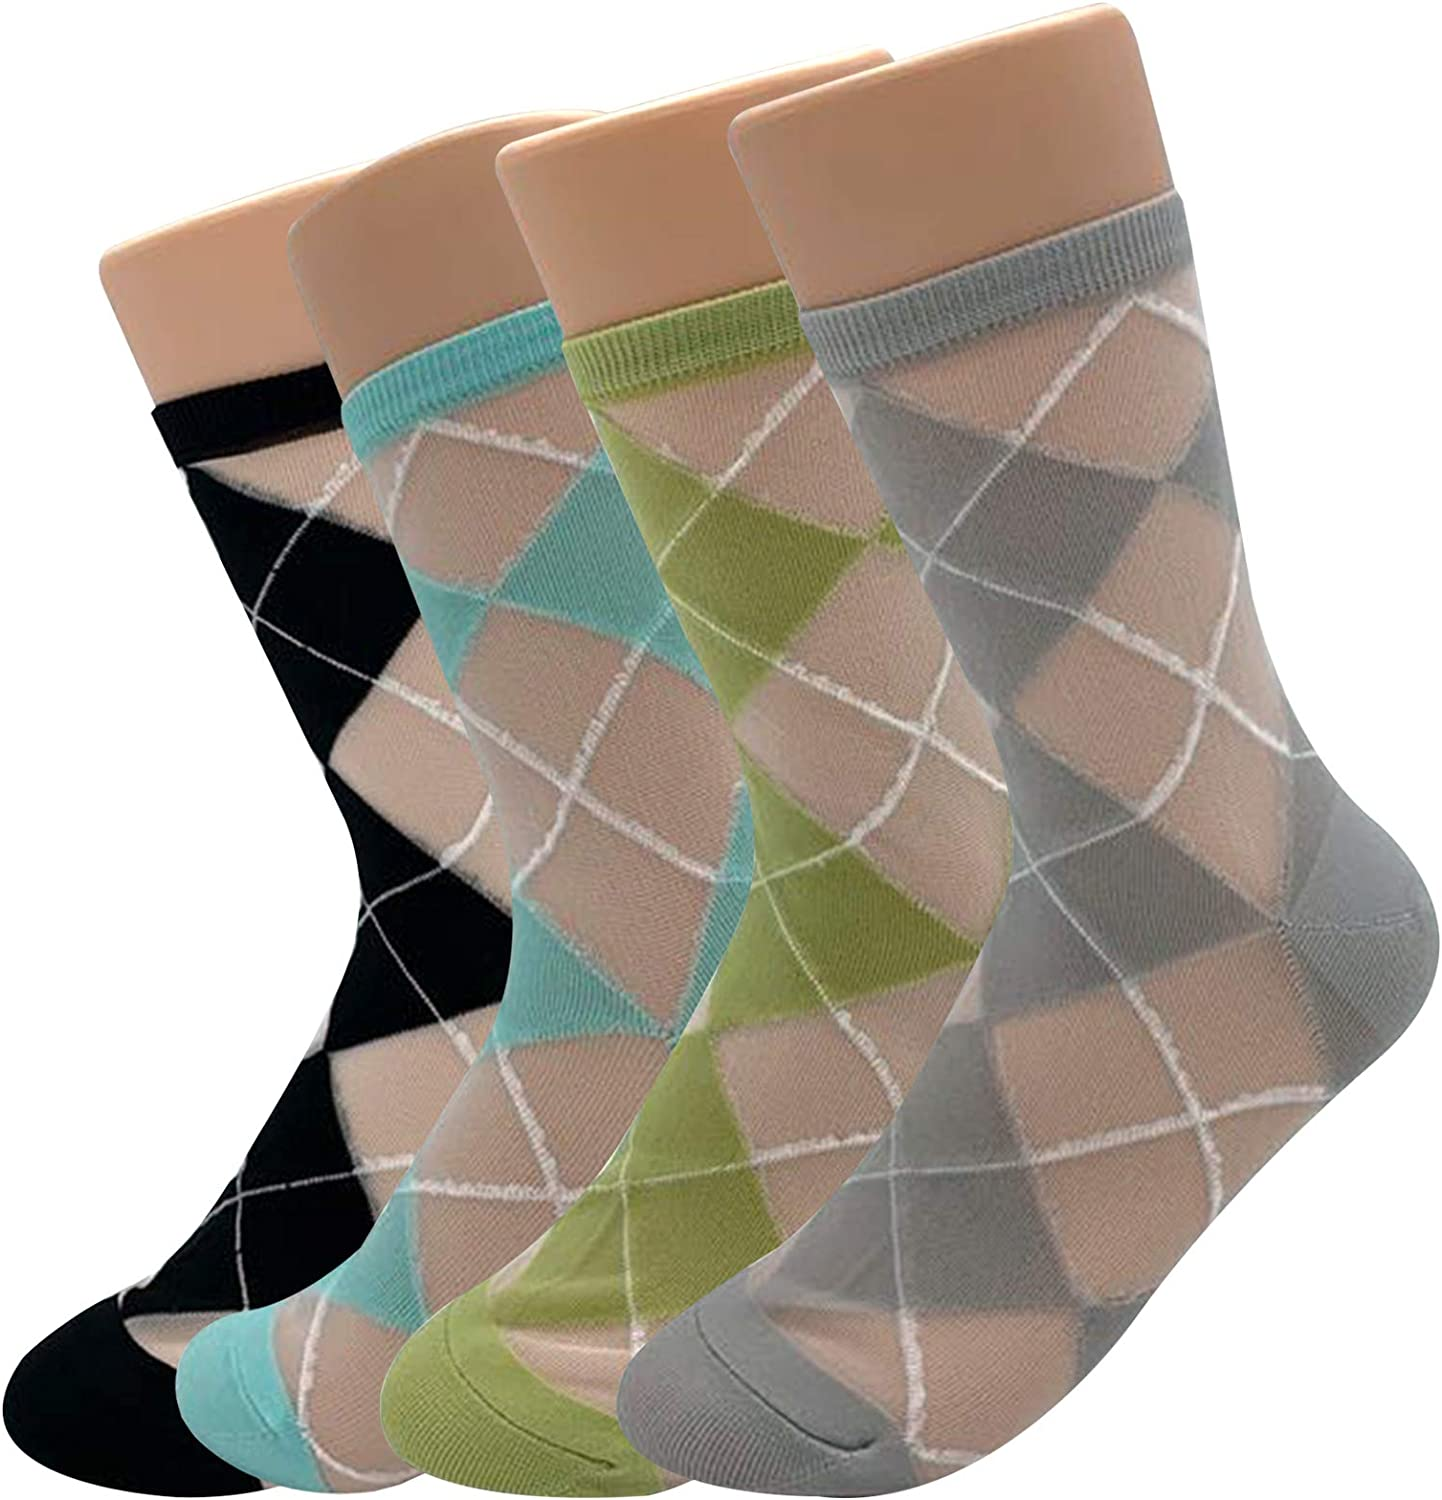 Women's High Ankle Crew Socks – Casual Multi Pack Cotton Lightweight Soft Cute Novelty Colorful Dress Sock Size 7-12